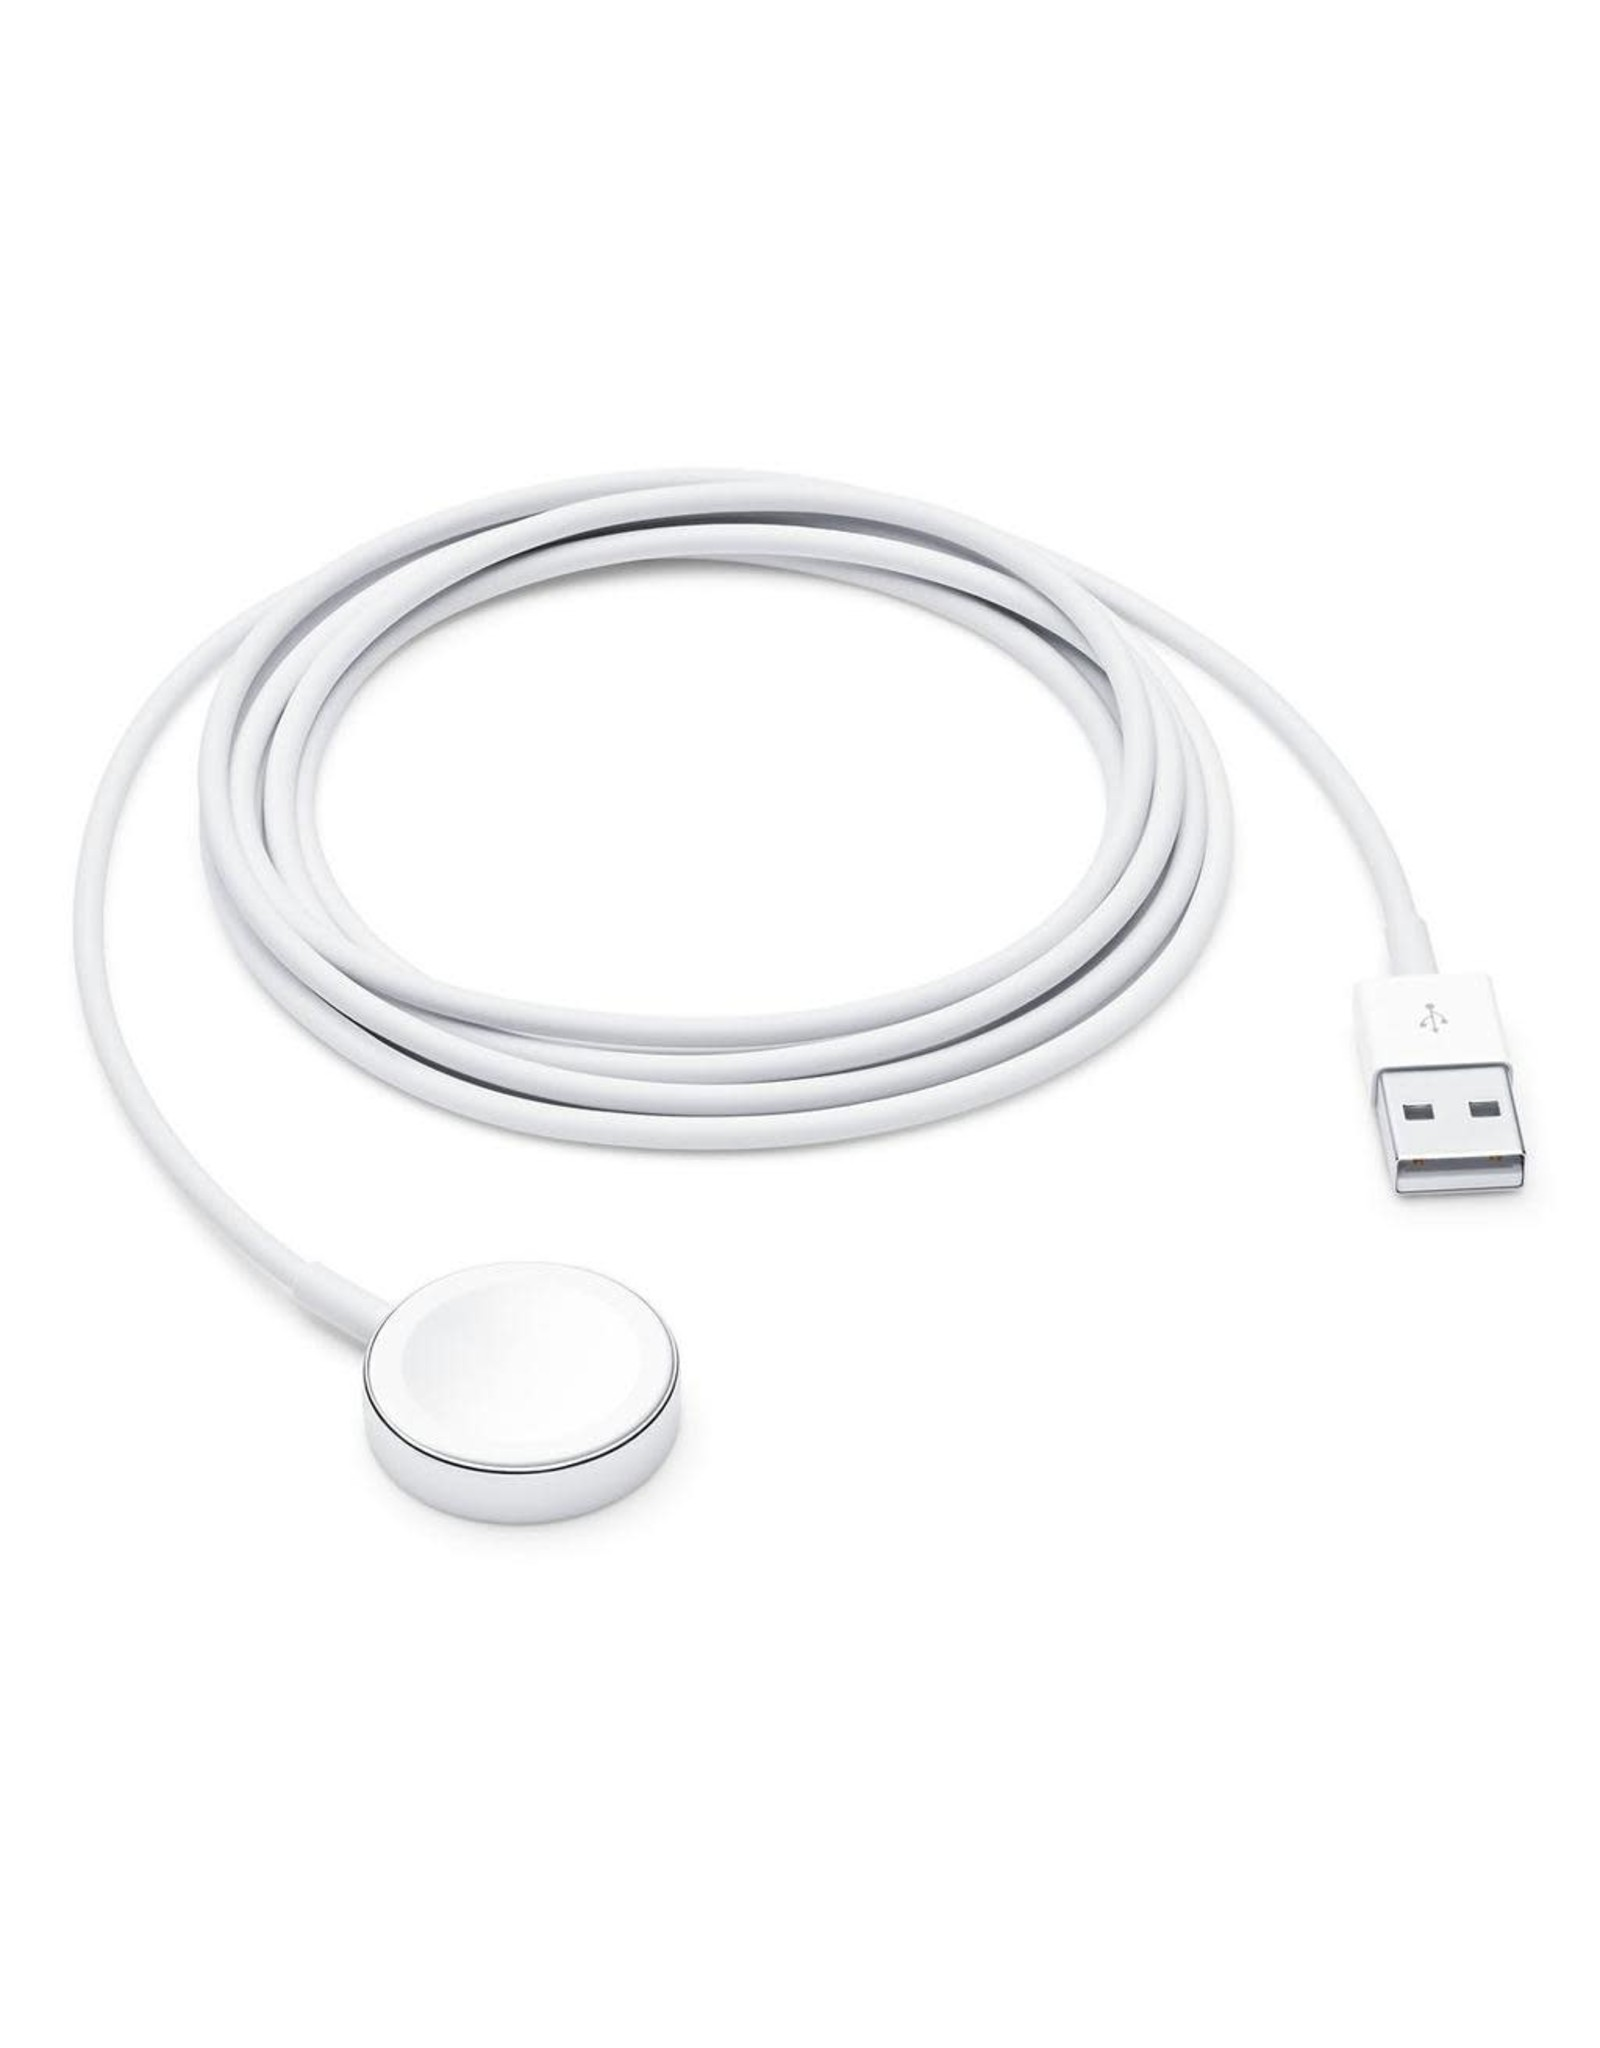 Apple Apple Watch Magnetic Charging Cable (2M)